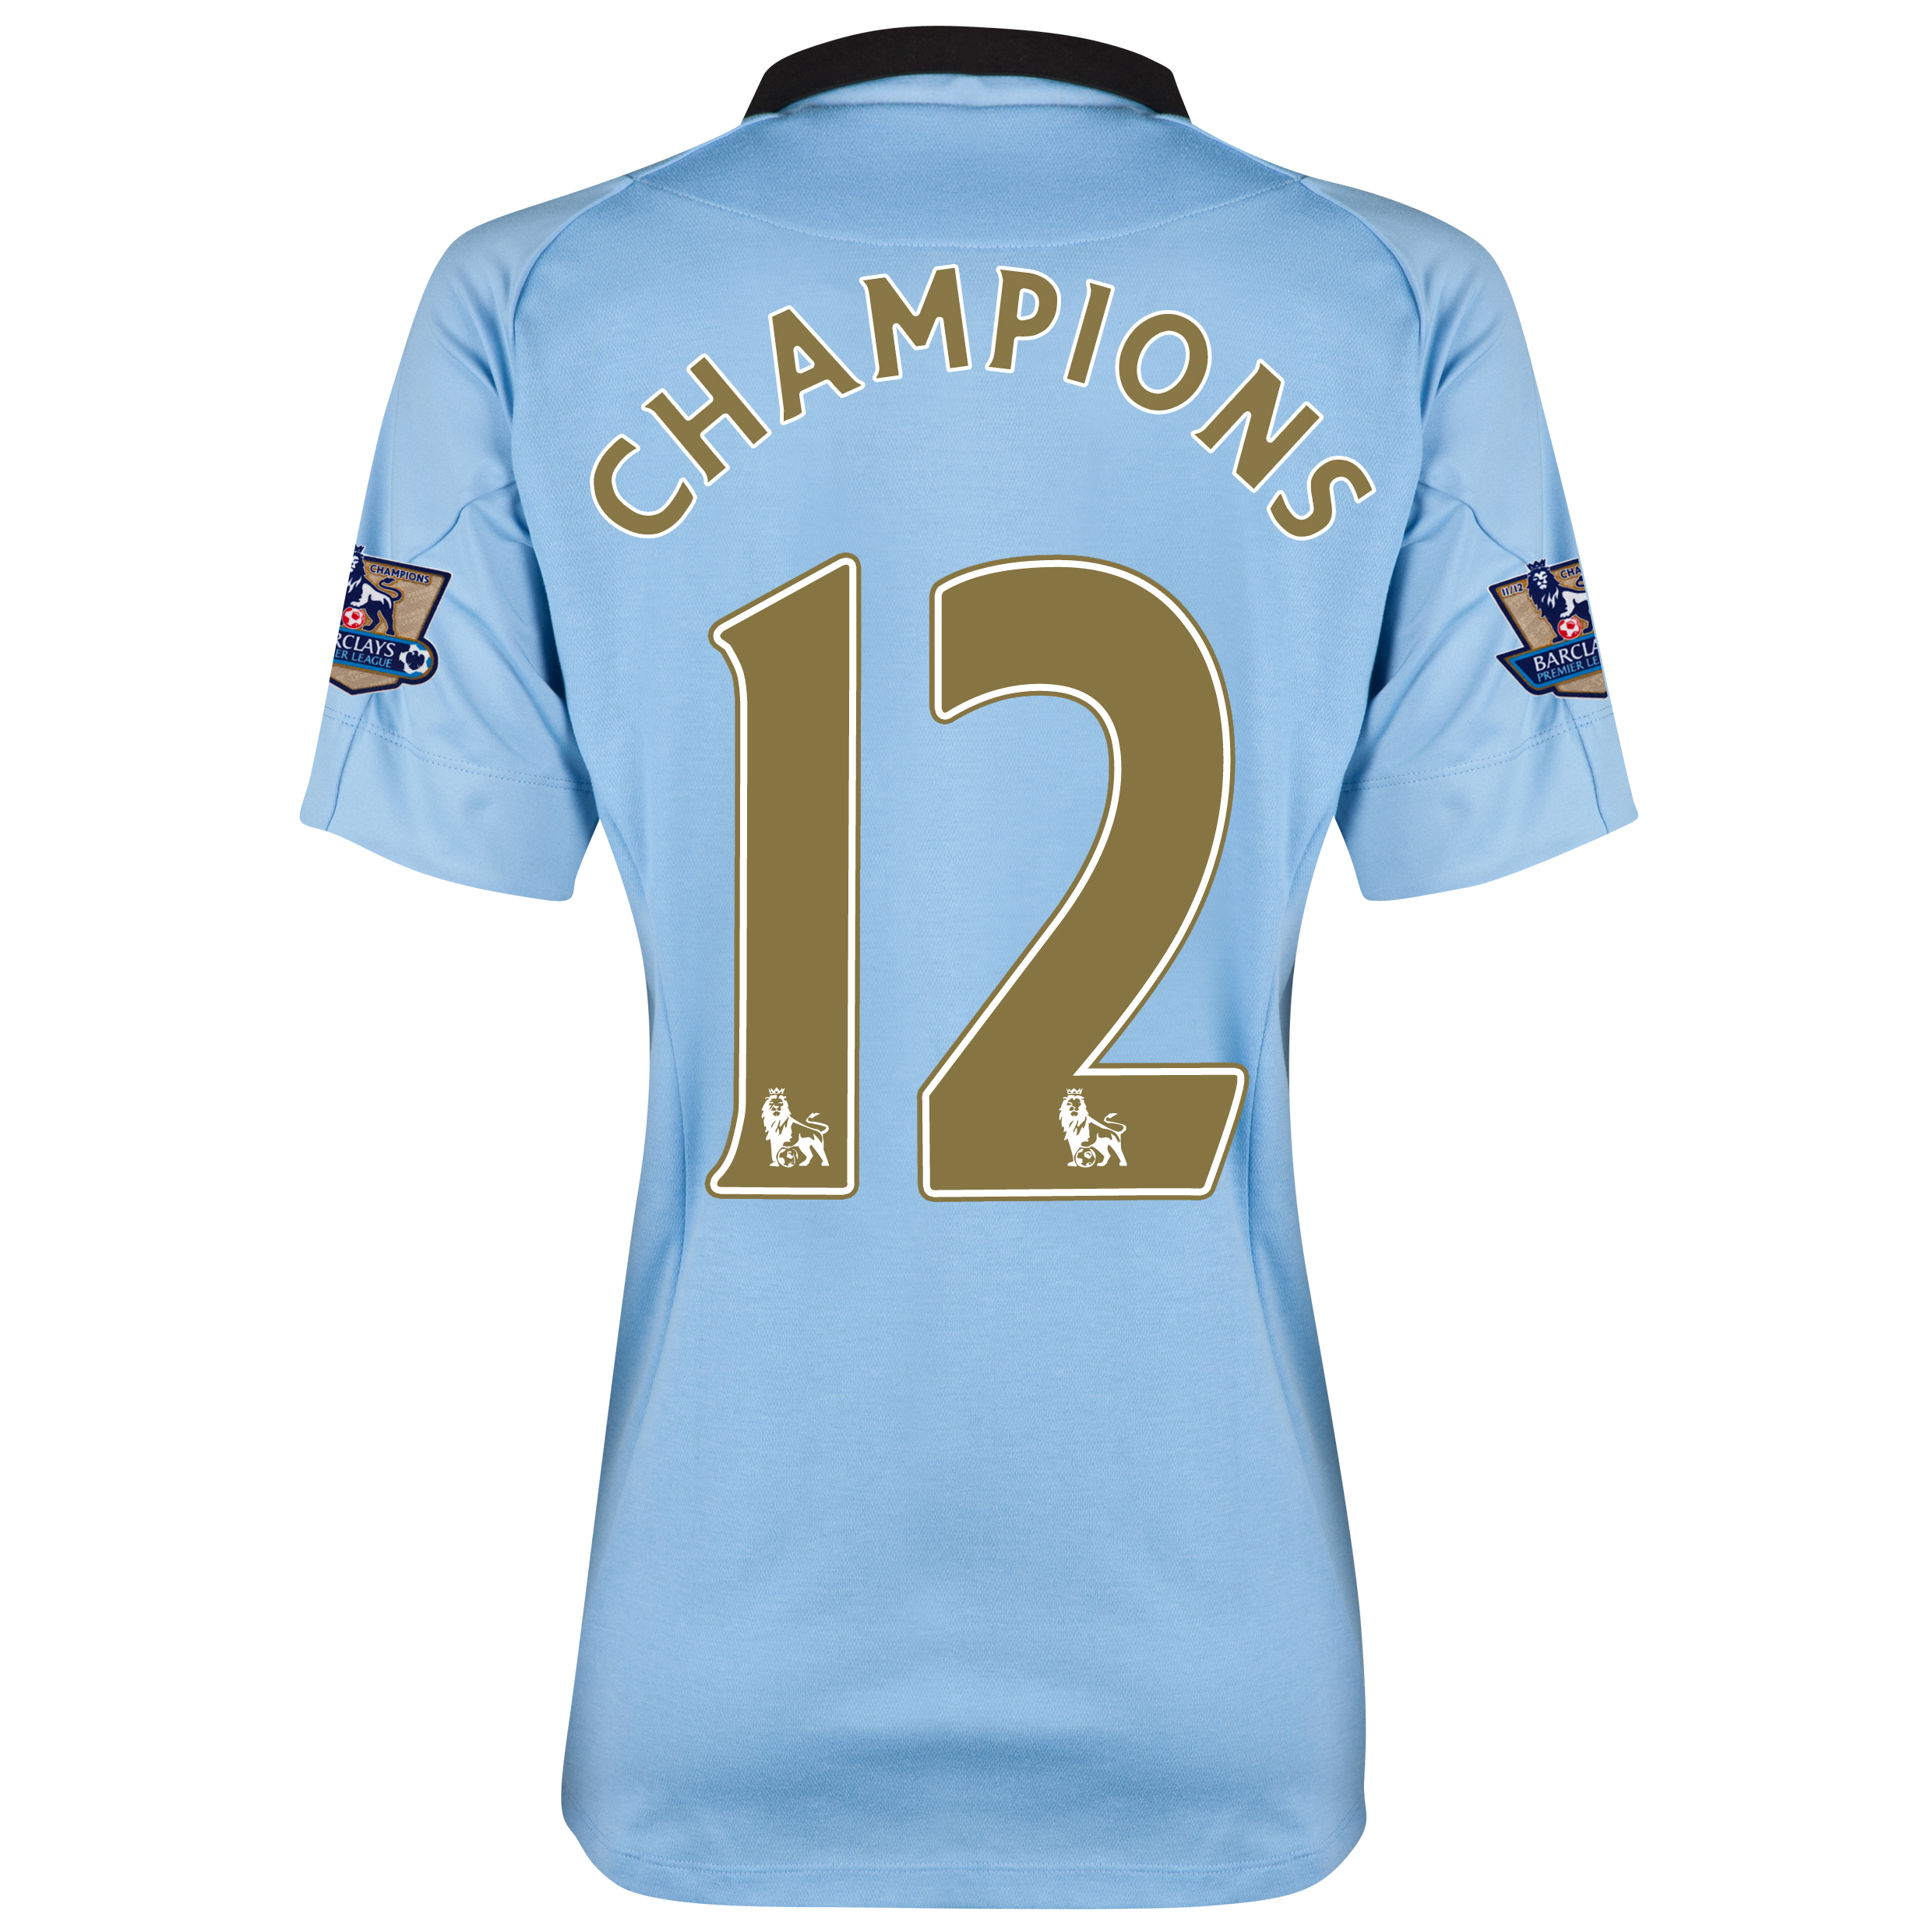 Manchester City Home Shirt 2012/13 with Champions 12 printing and Premier League Champions Badges - Womens